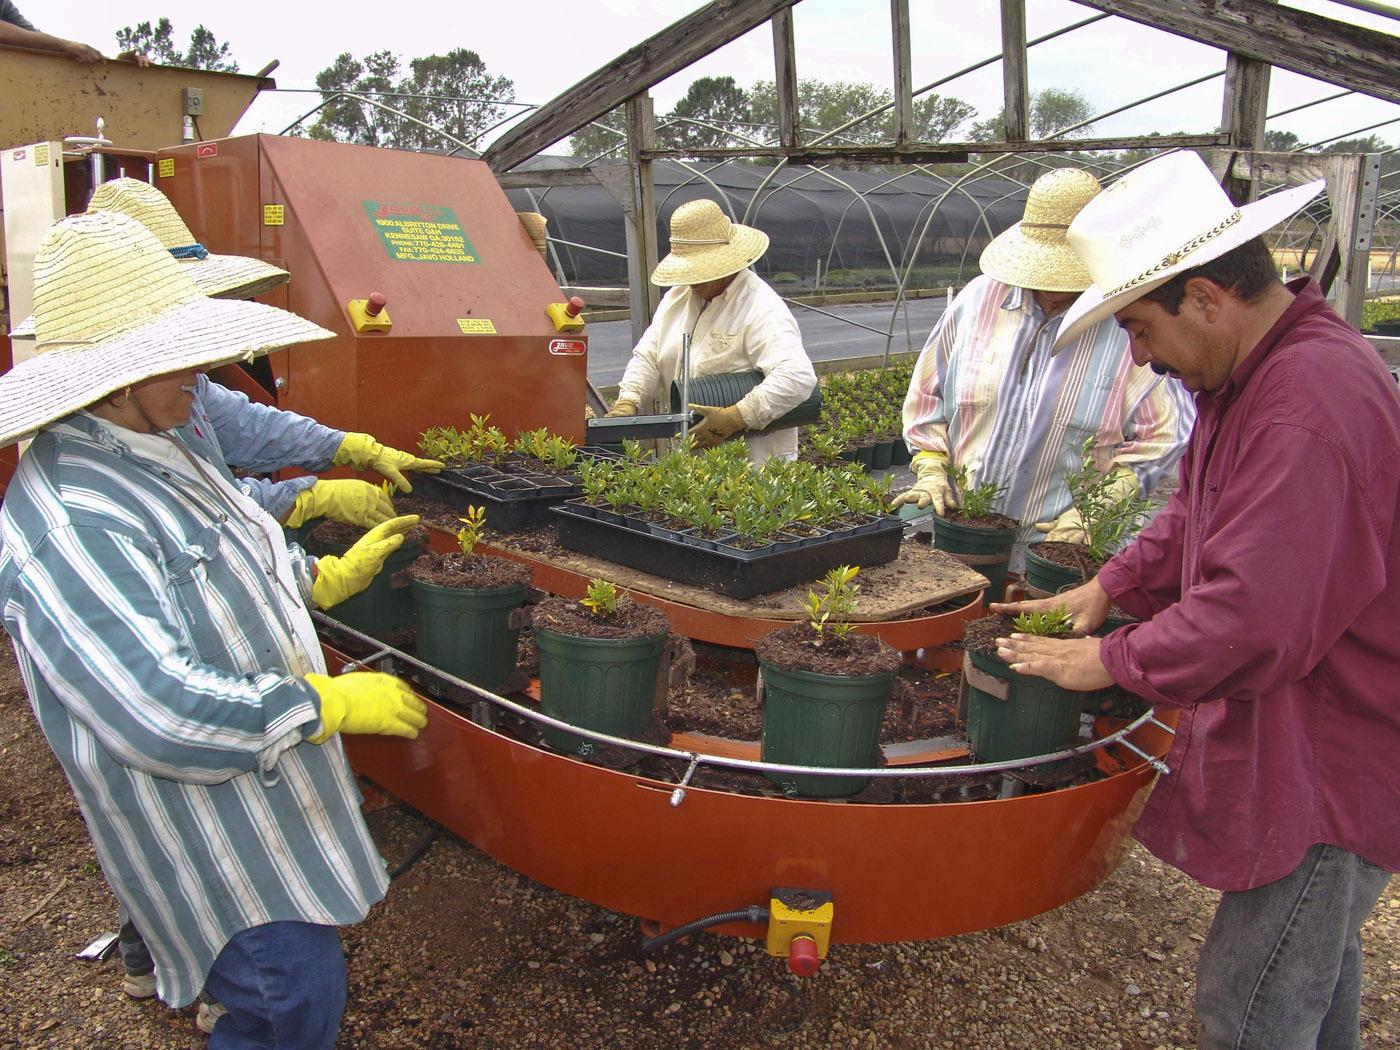 Workers at Rocky Creek Nursery in Lucedale use a machine to fill pots. The technology prevents them from having to stoop down or lift heavy pots and plant materials. (Photo by MSU's Coastal Research and Extension Center/Scott Langlois)